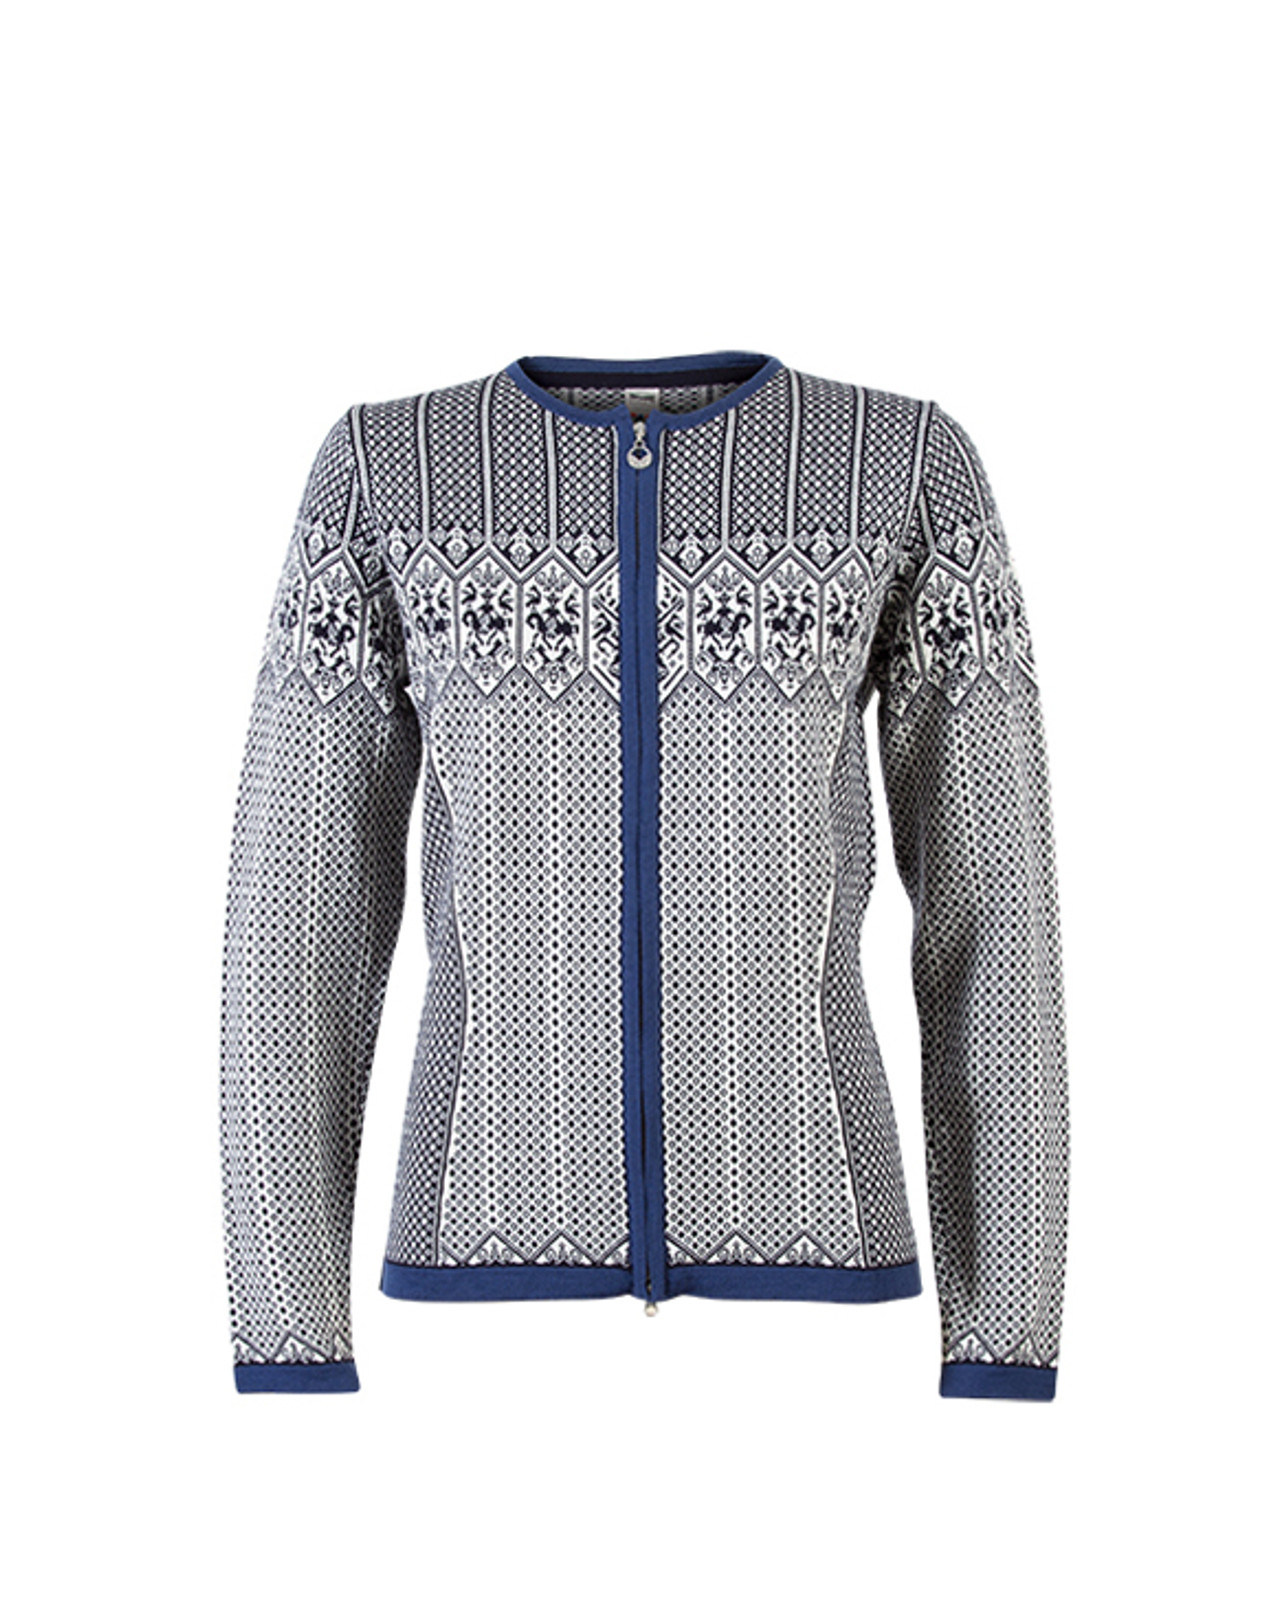 Dale of Norway, Sigrid cardigan, ladies, in Navy/Off White/Indigo, 82071-C, on sale at The Nordic Shop